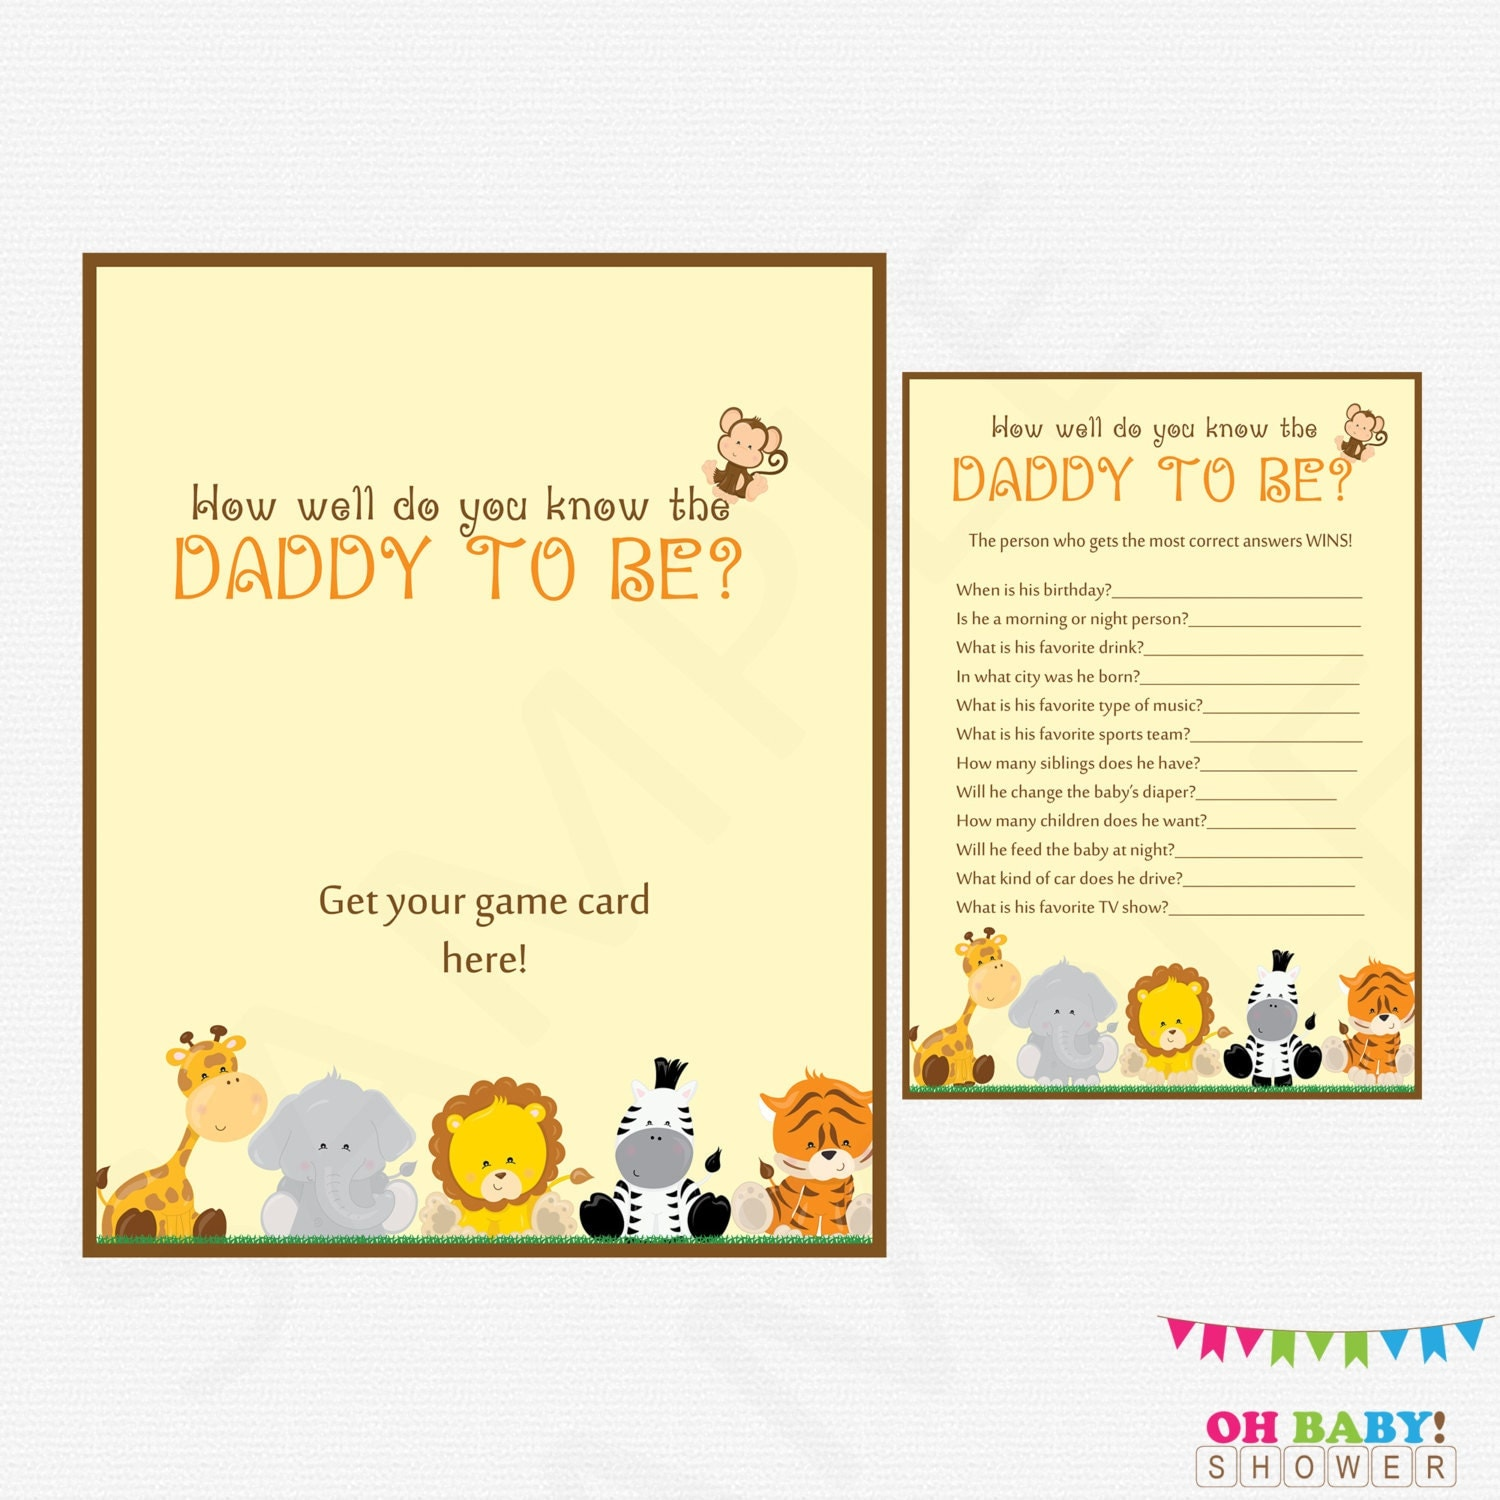 Safari Baby Shower Games How Well Do You Know The DADDY To